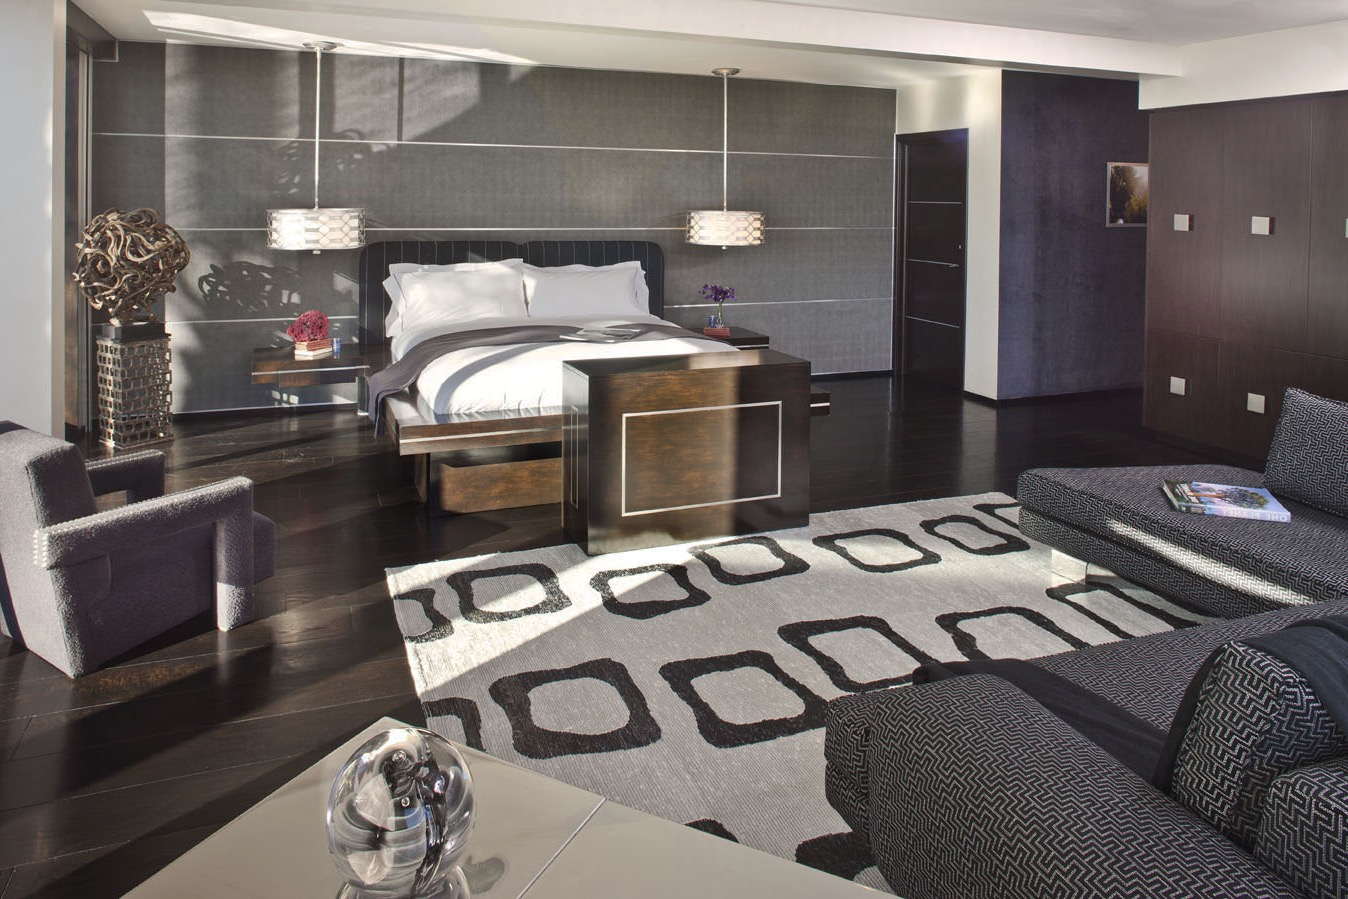 Contemporary Master Apartment Bedroom Interior Luxury Design (Image 7 of 28)